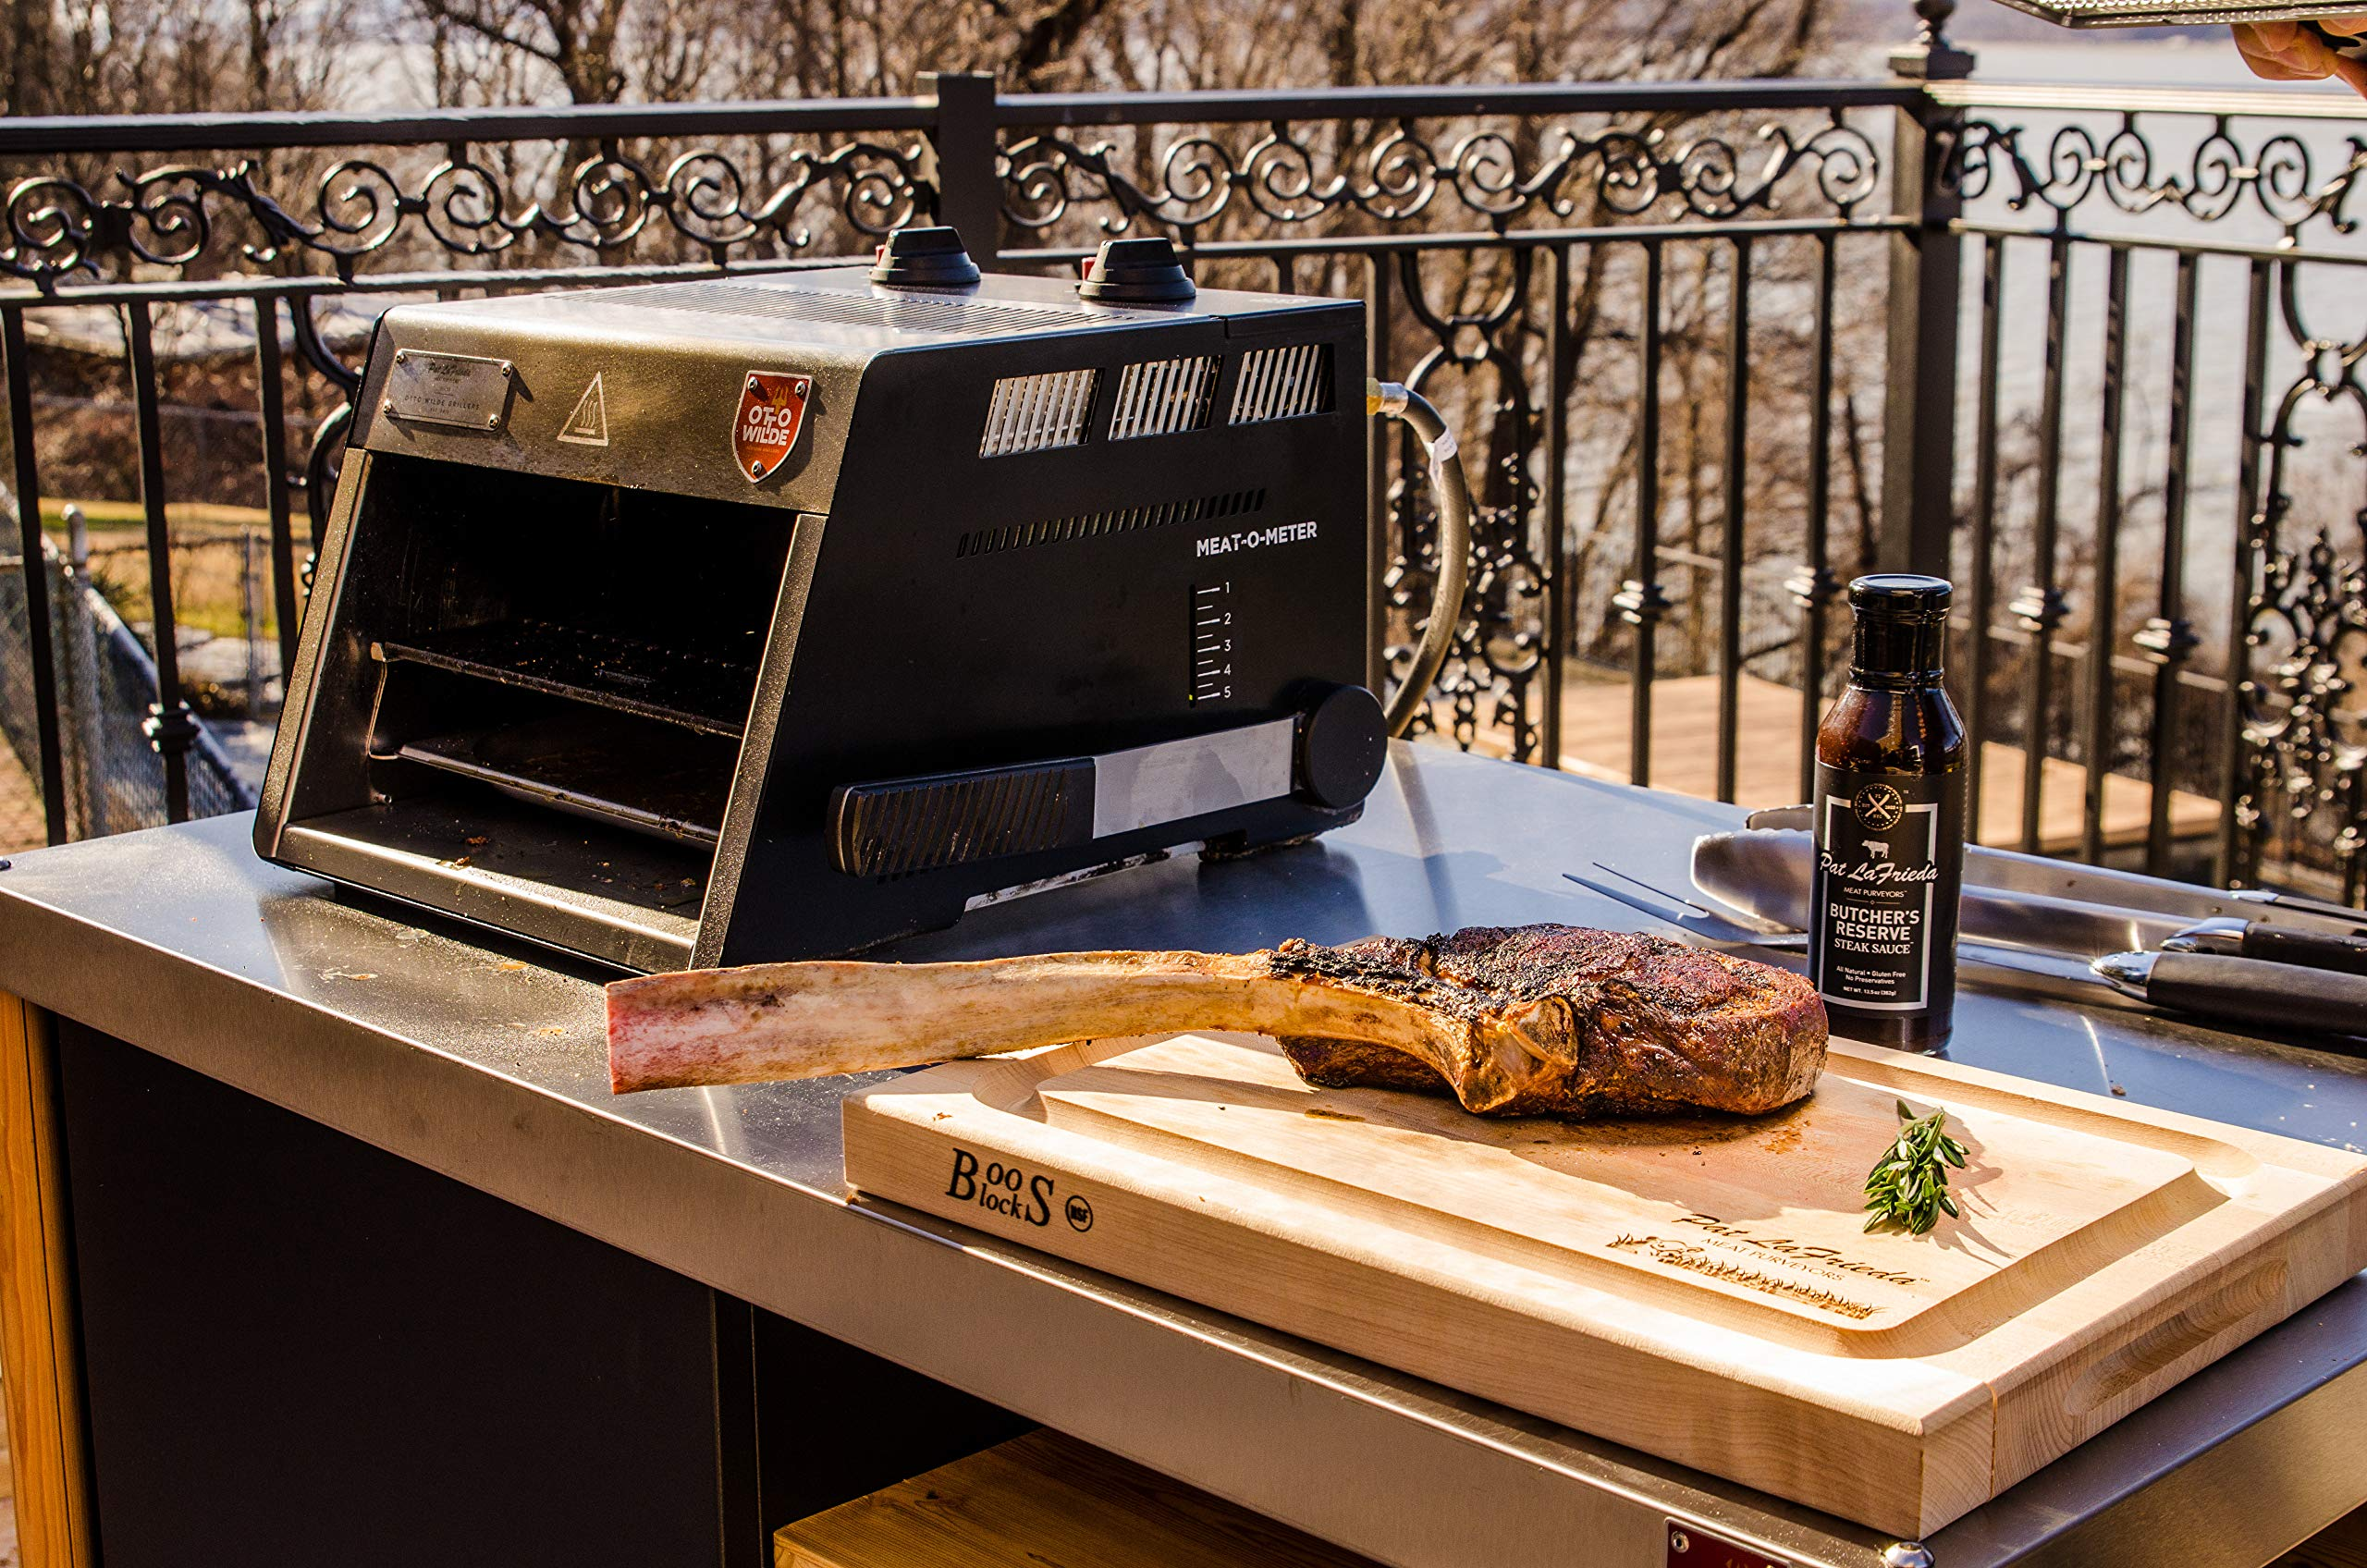 The Original Otto 1500°F Steak Grill with Dual OverFire Radiant Burners for The Perfect Steak, 100% Stainless Steel, Made in Germany, Delivered with cast Iron Grid, Clever Lever and More